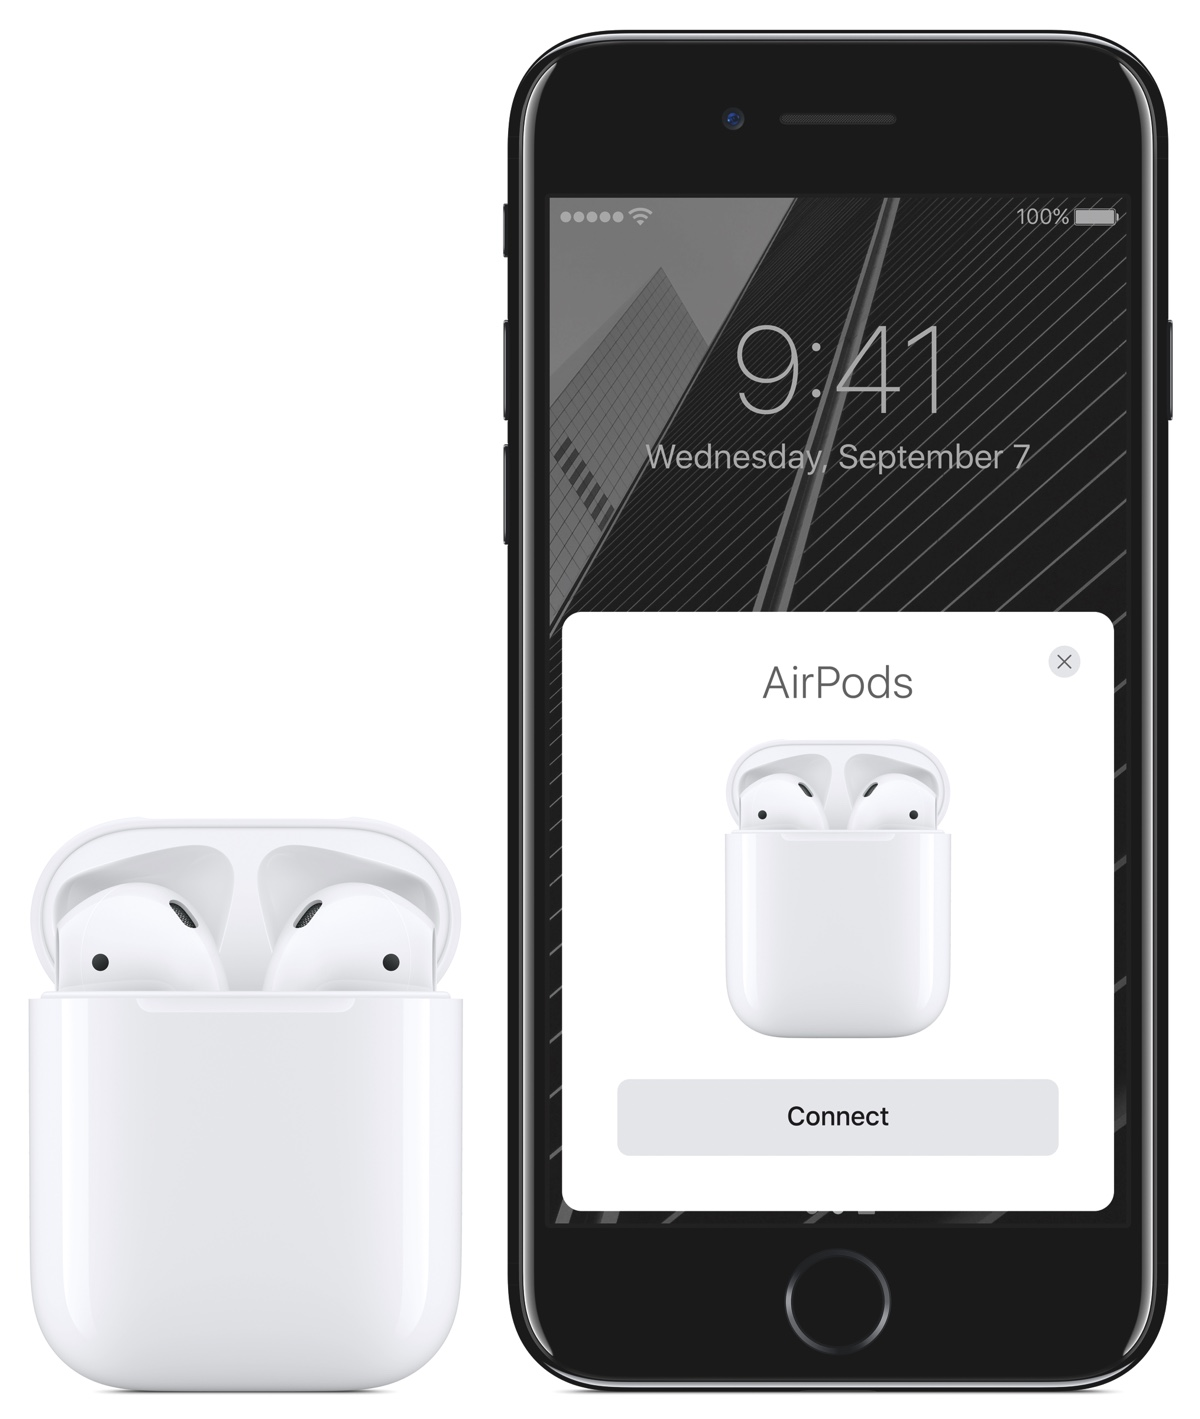 airpods iphone 7 pairing